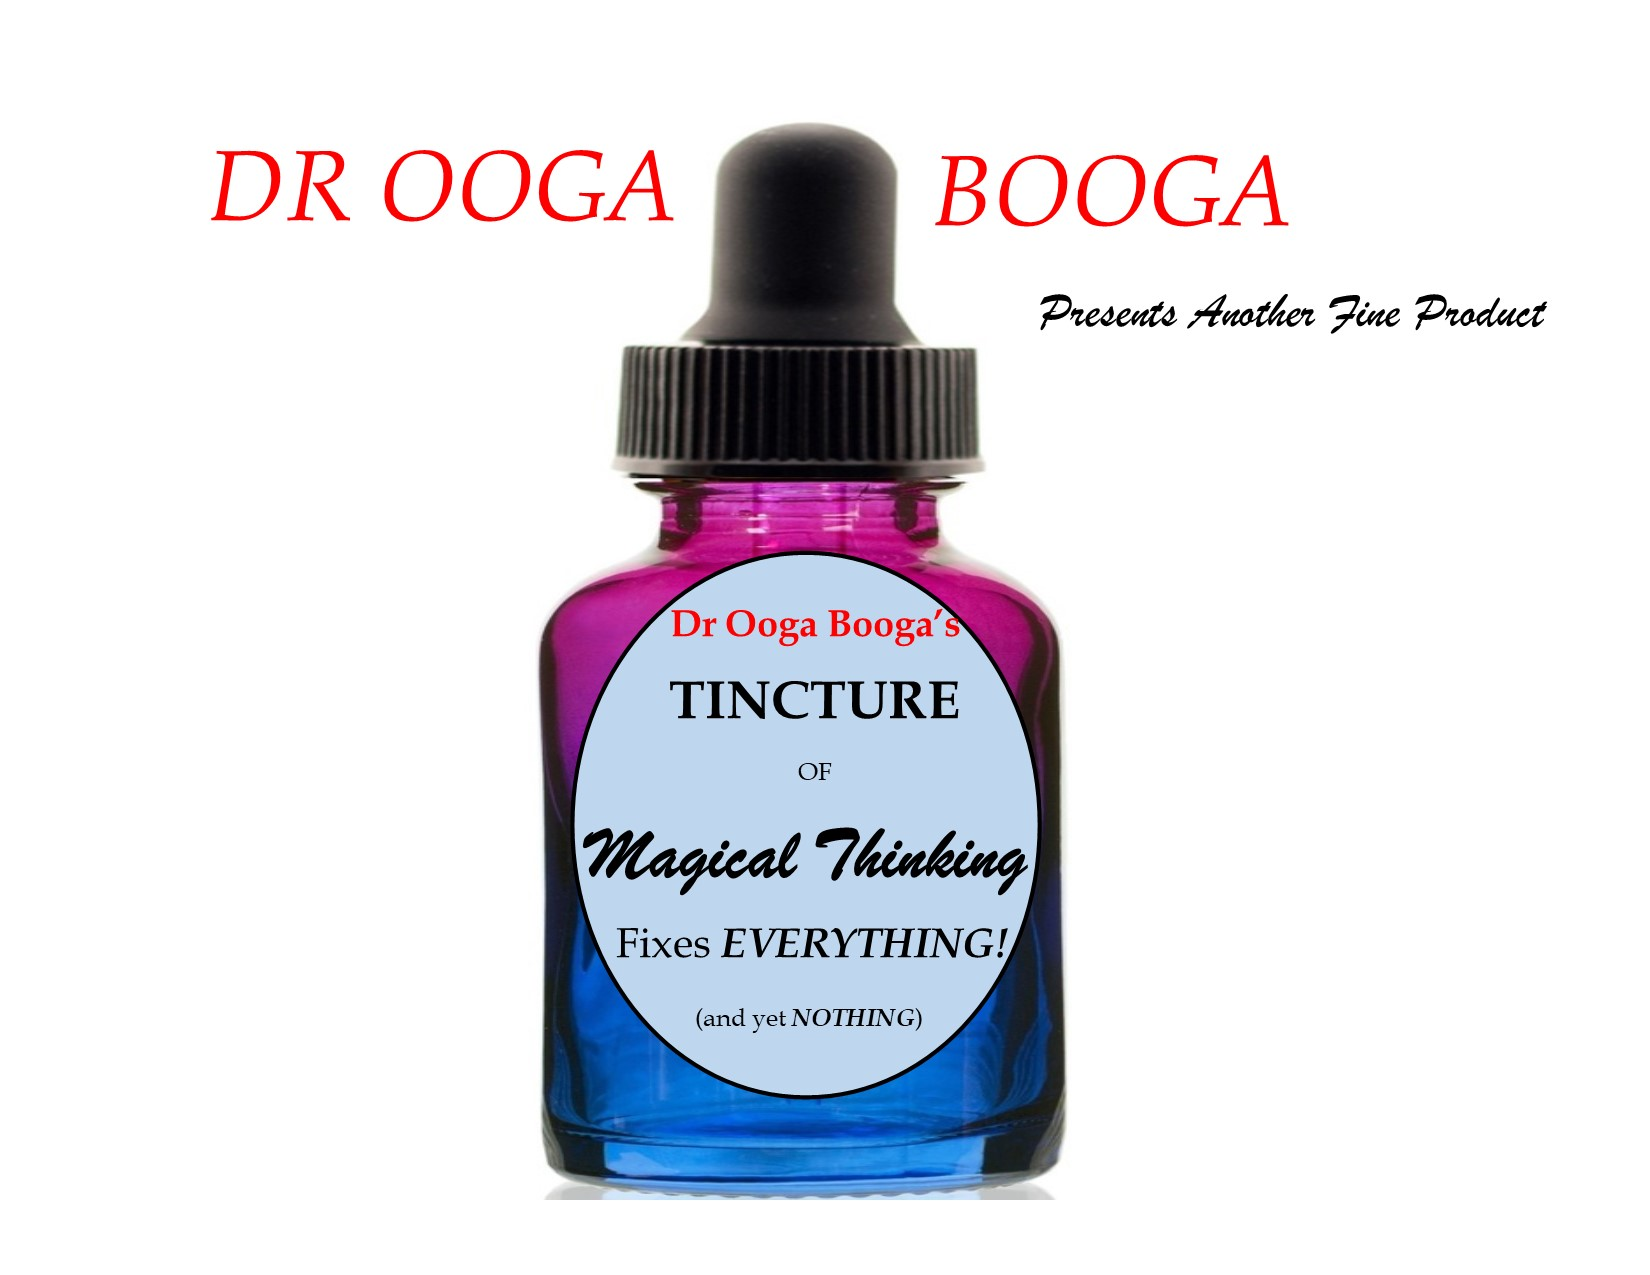 Dr Ooga Booga's Tincture Bottle